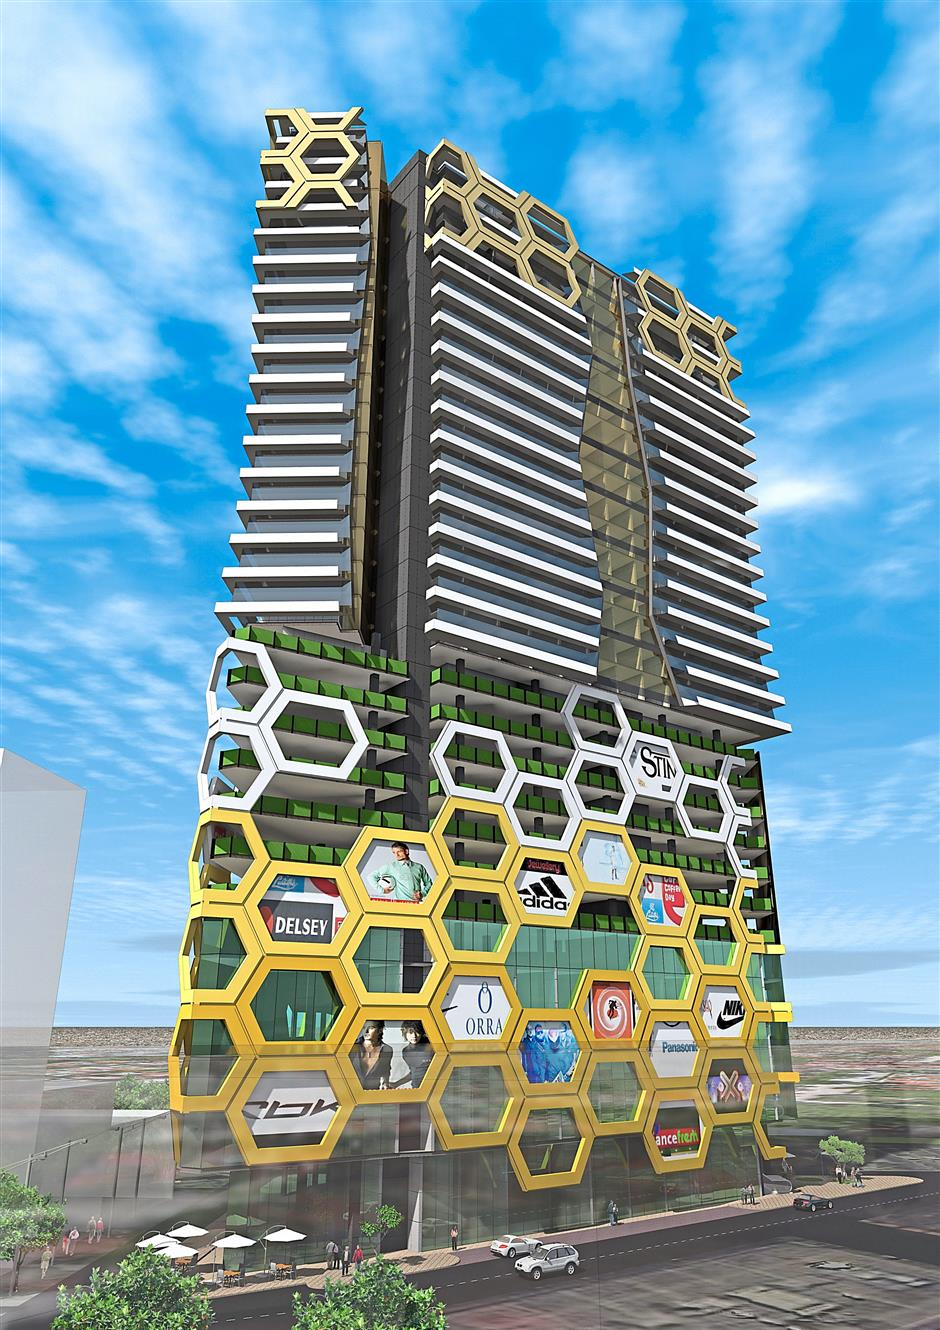 A rendering of M101 Holding's proposed project in Bukit Bintang, which is popular with tourists.